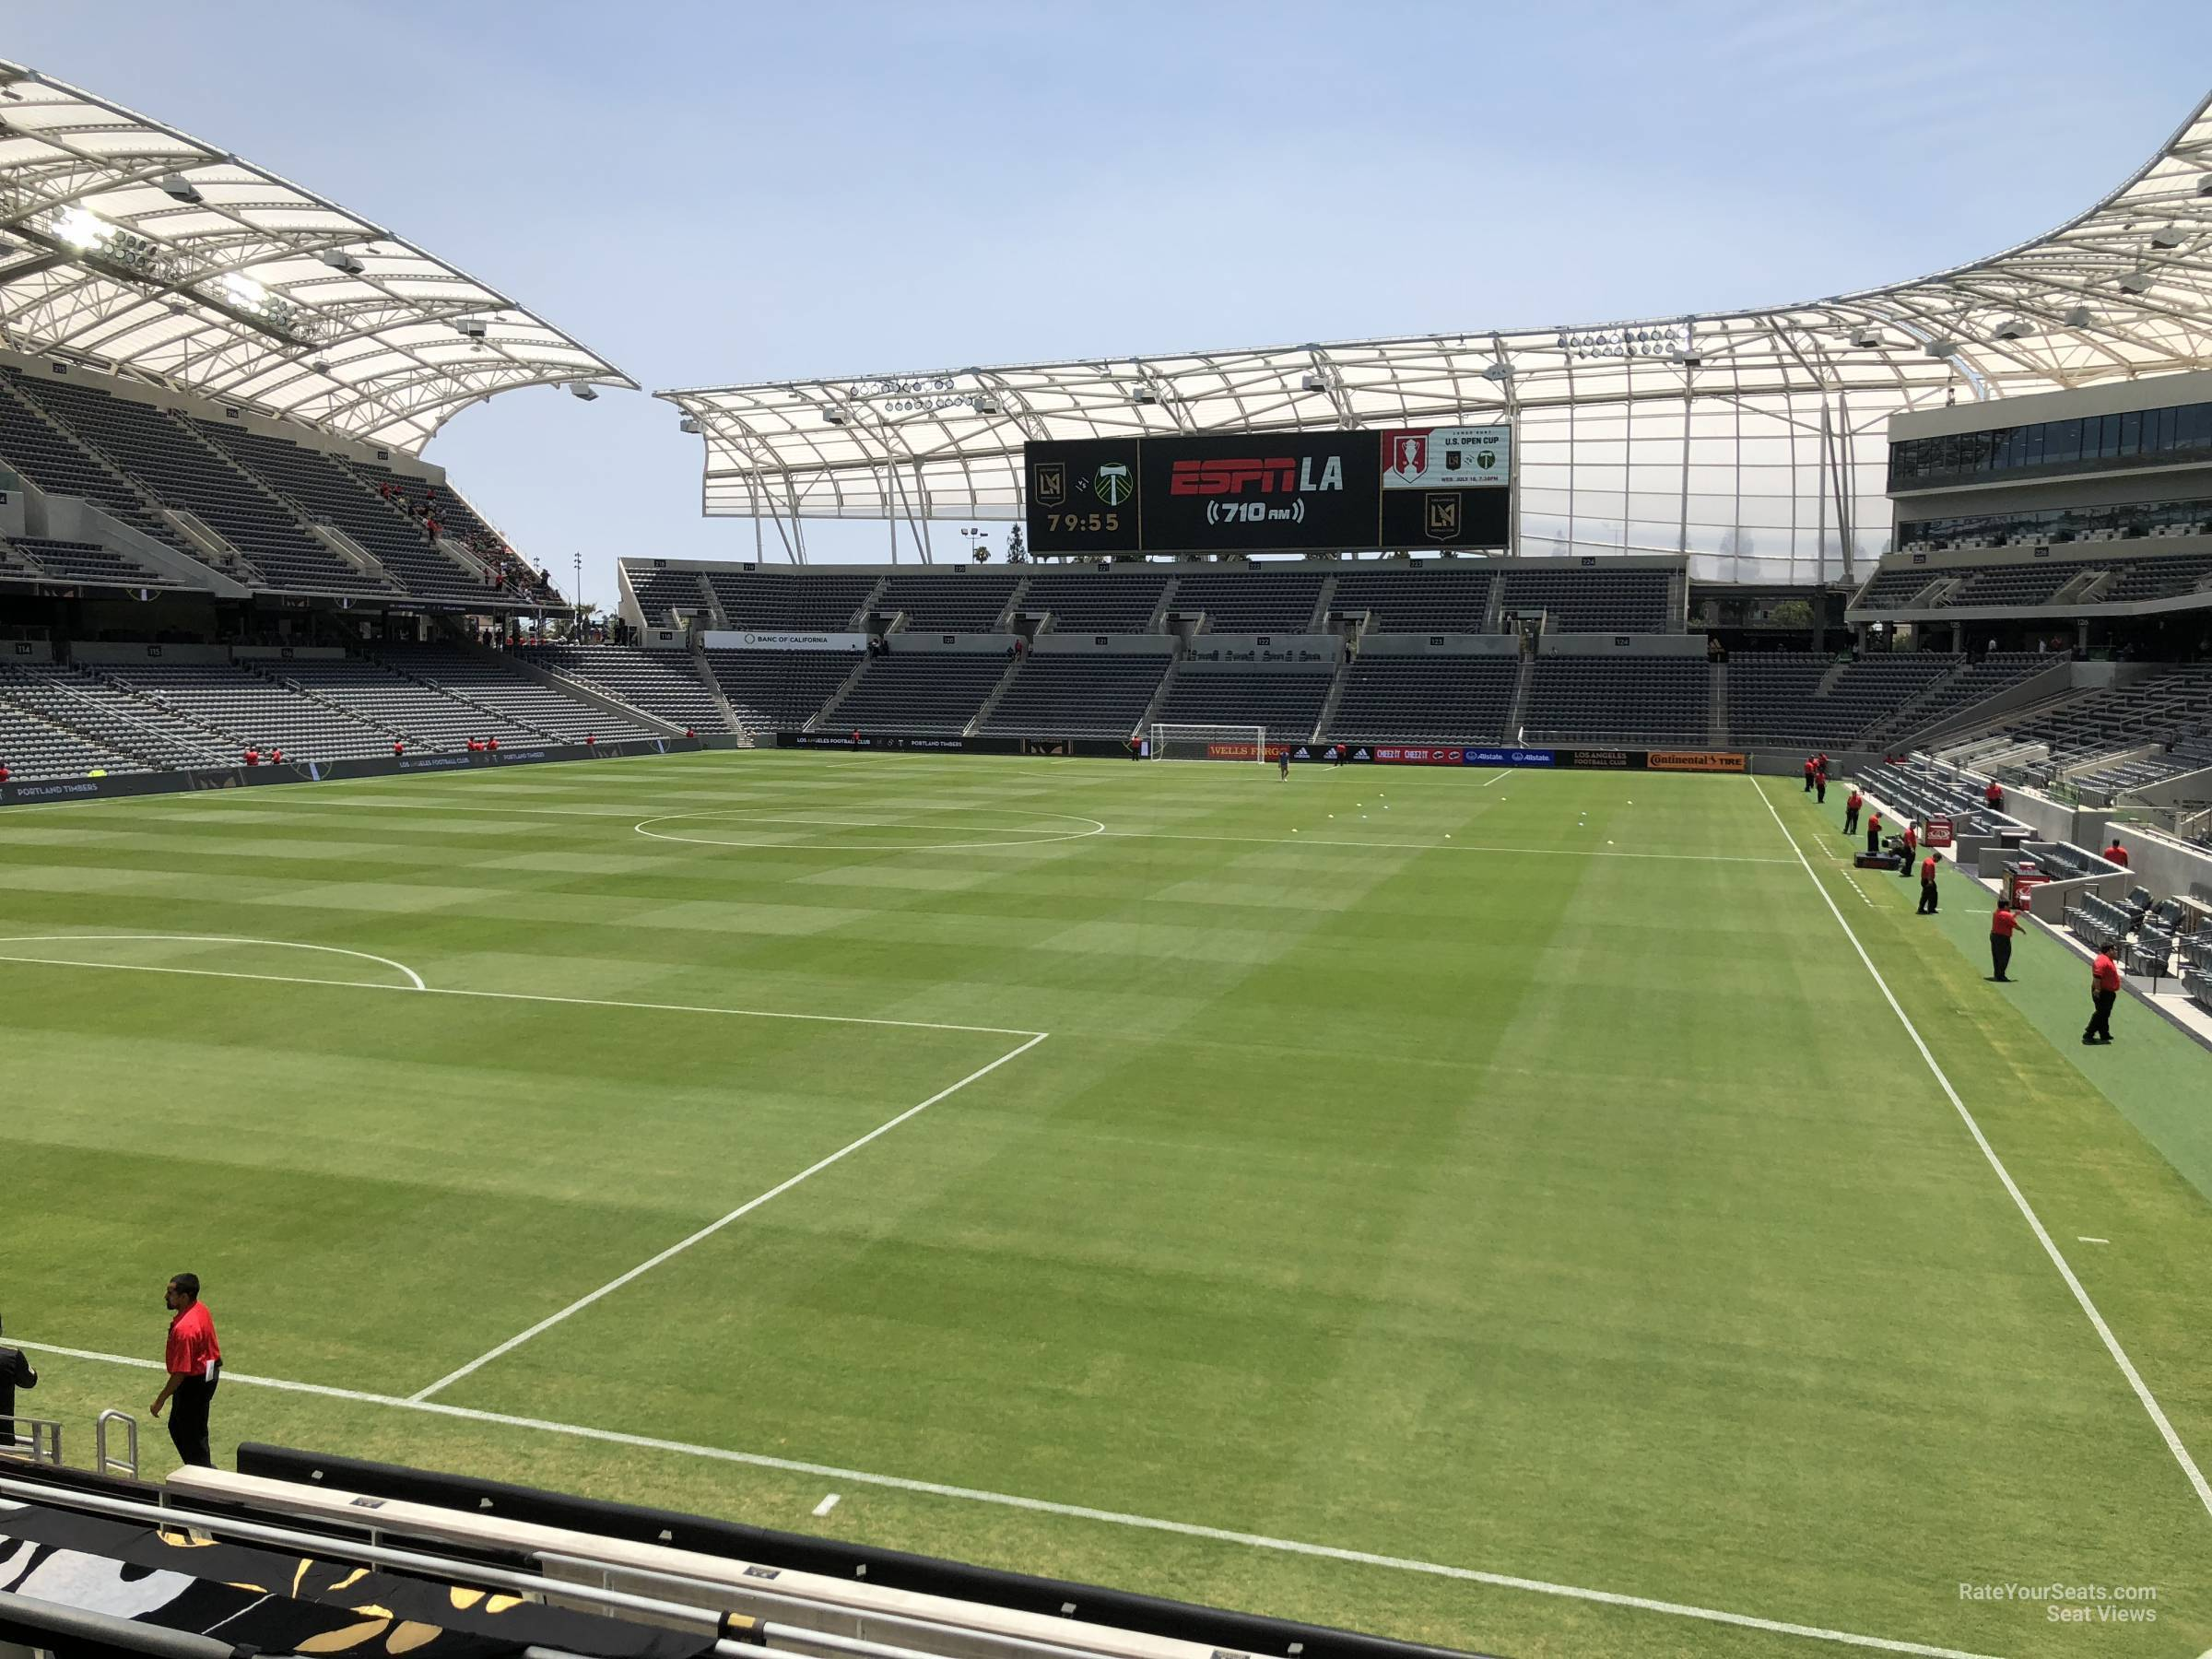 Supporters Section seat view